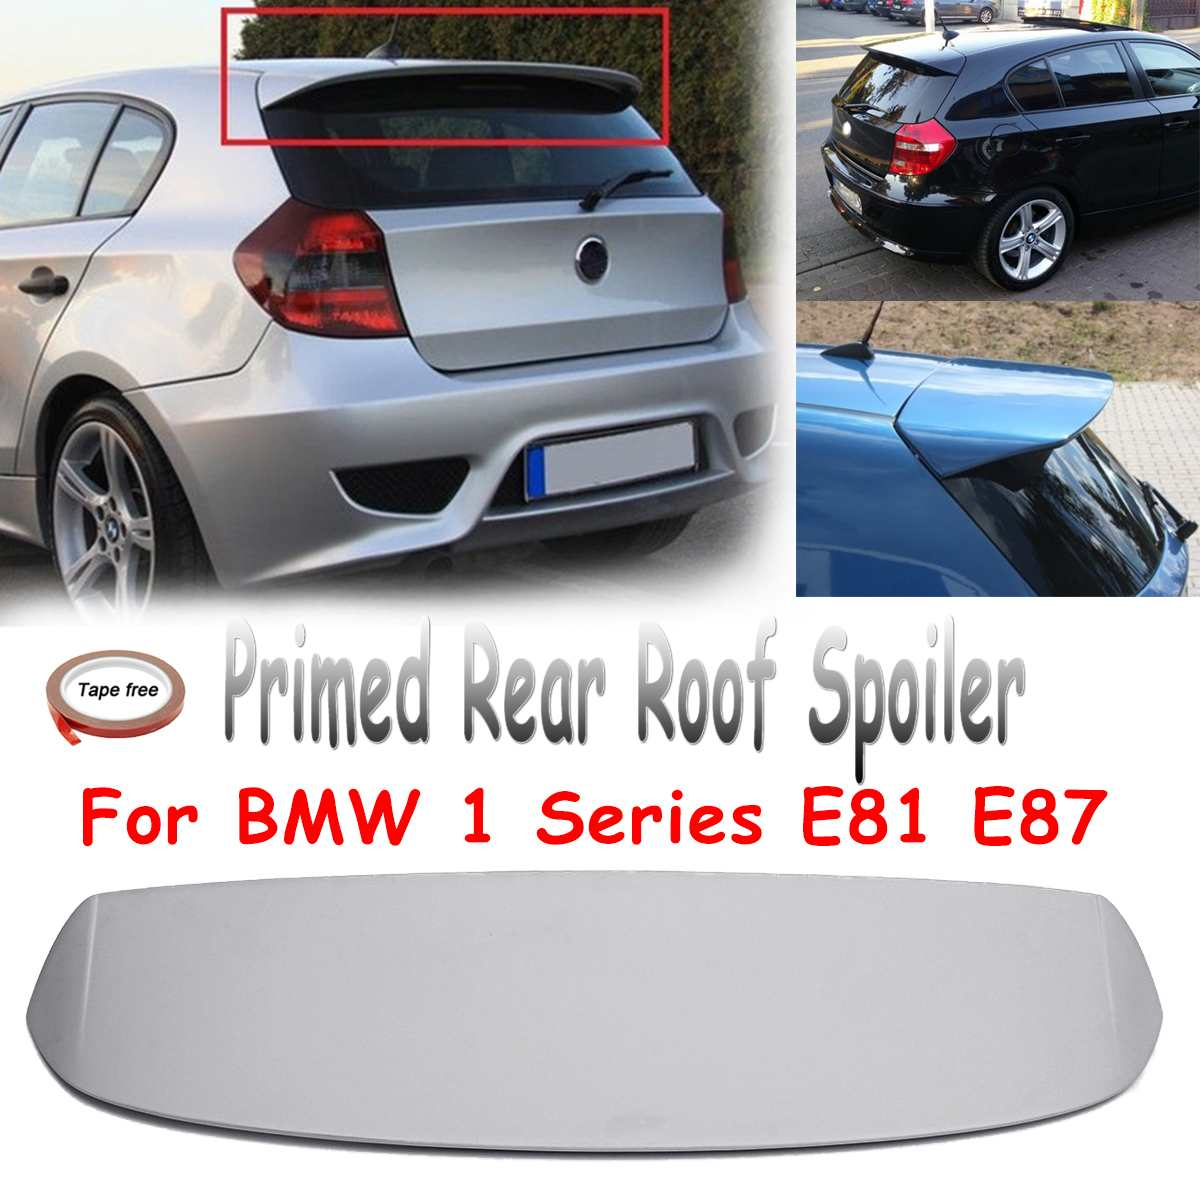 Unpainted Primed Rear Trunk Roof Lip Trunk Spoiler Fiberglass Wing Fits for BMW 1 Series E81 E87 FRPUnpainted Primed Rear Trunk Roof Lip Trunk Spoiler Fiberglass Wing Fits for BMW 1 Series E81 E87 FRP